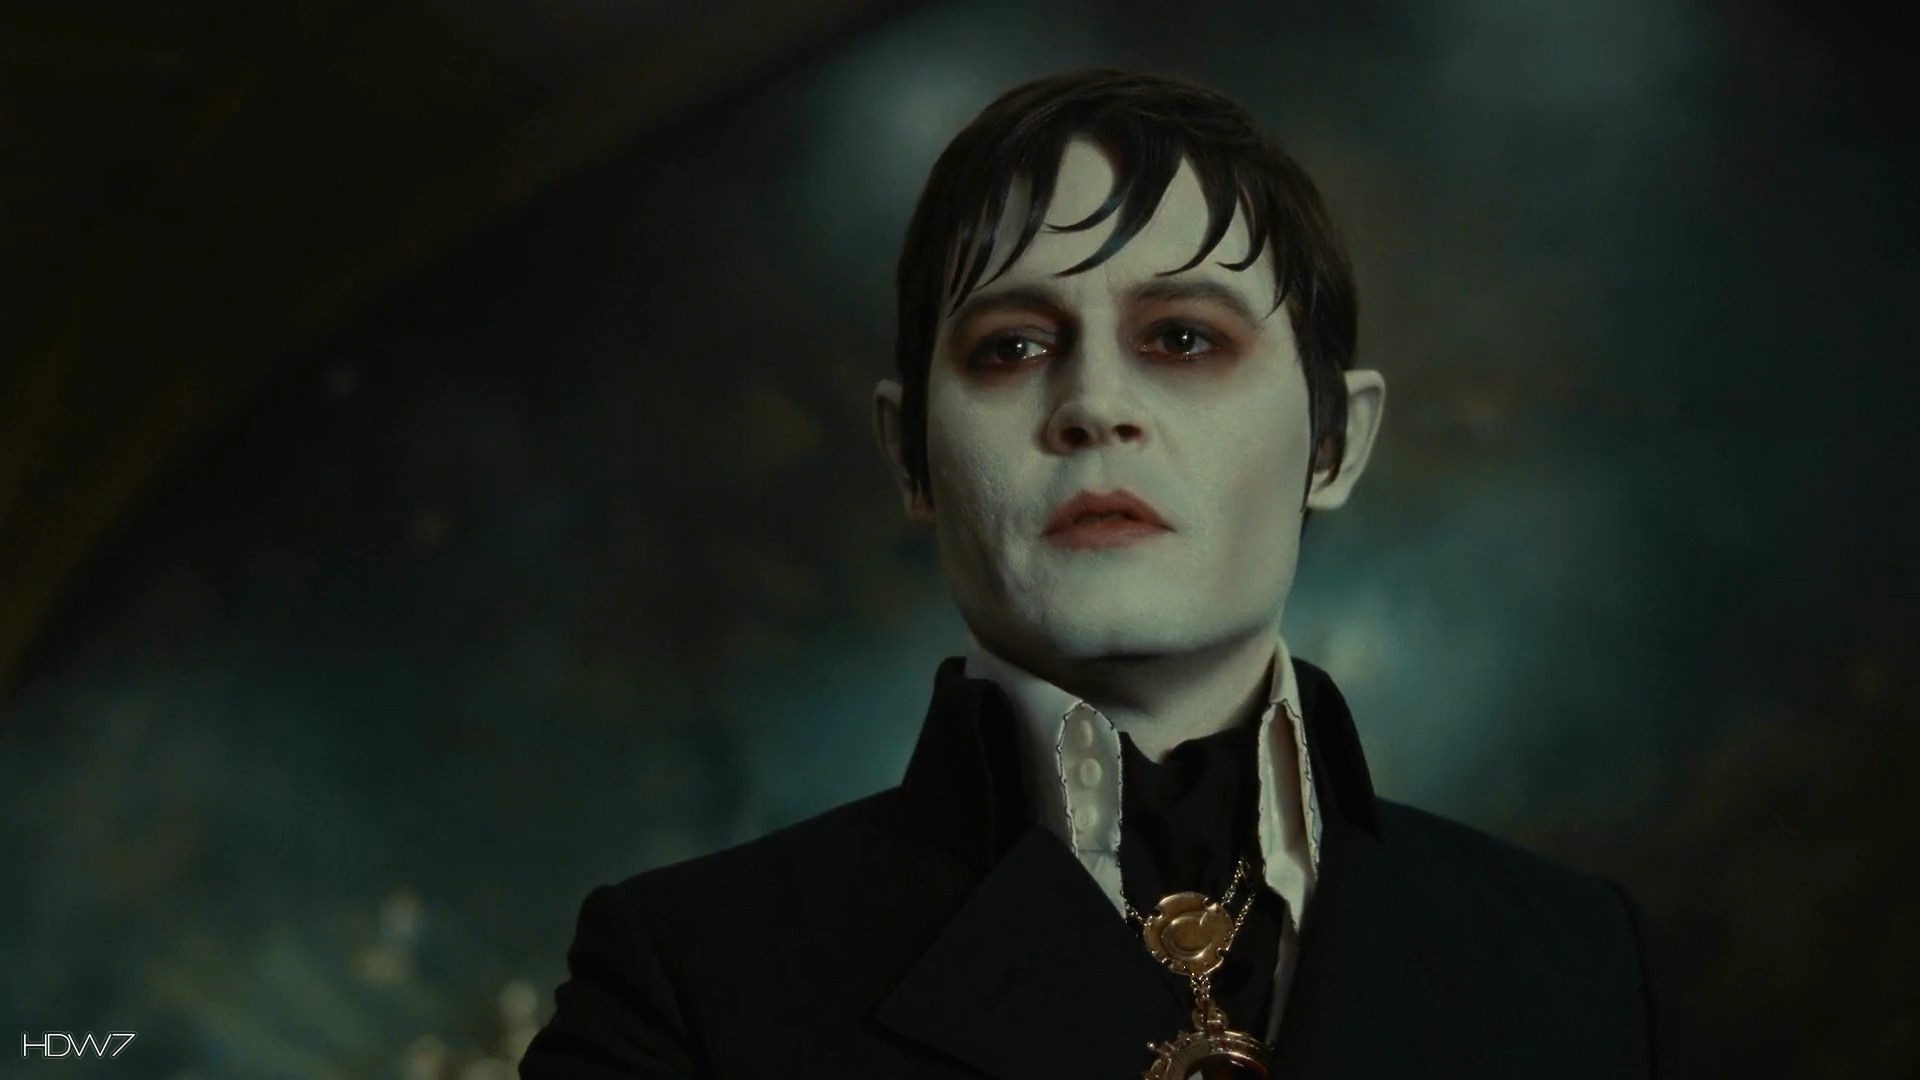 1920x1080 dark shadows movie johnny depp wallpaper